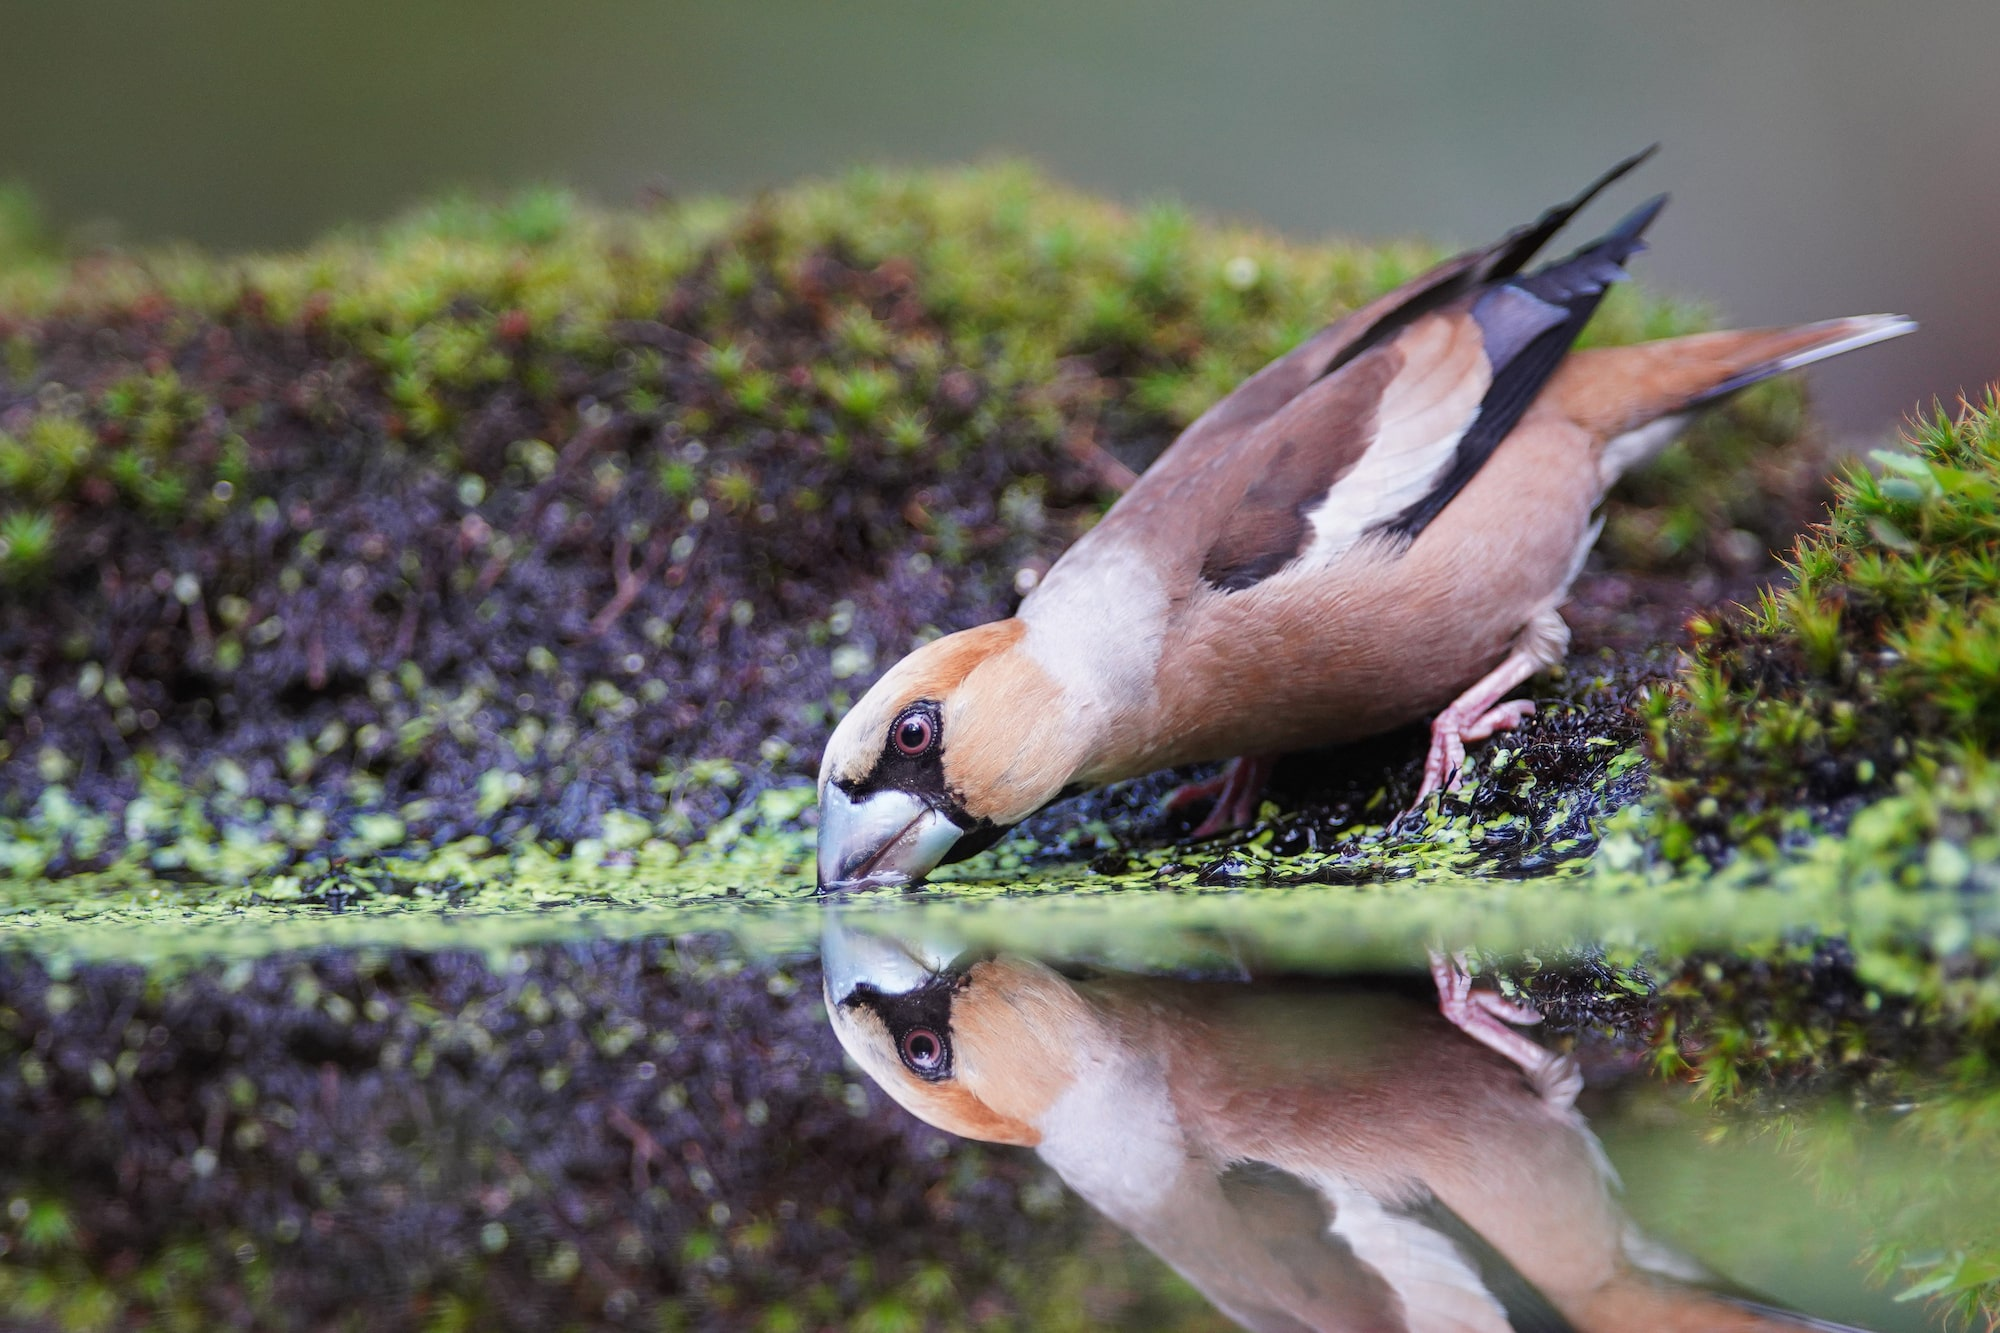 gustav kiburg sony alpha 7RM4 bird drinks from a forest pond